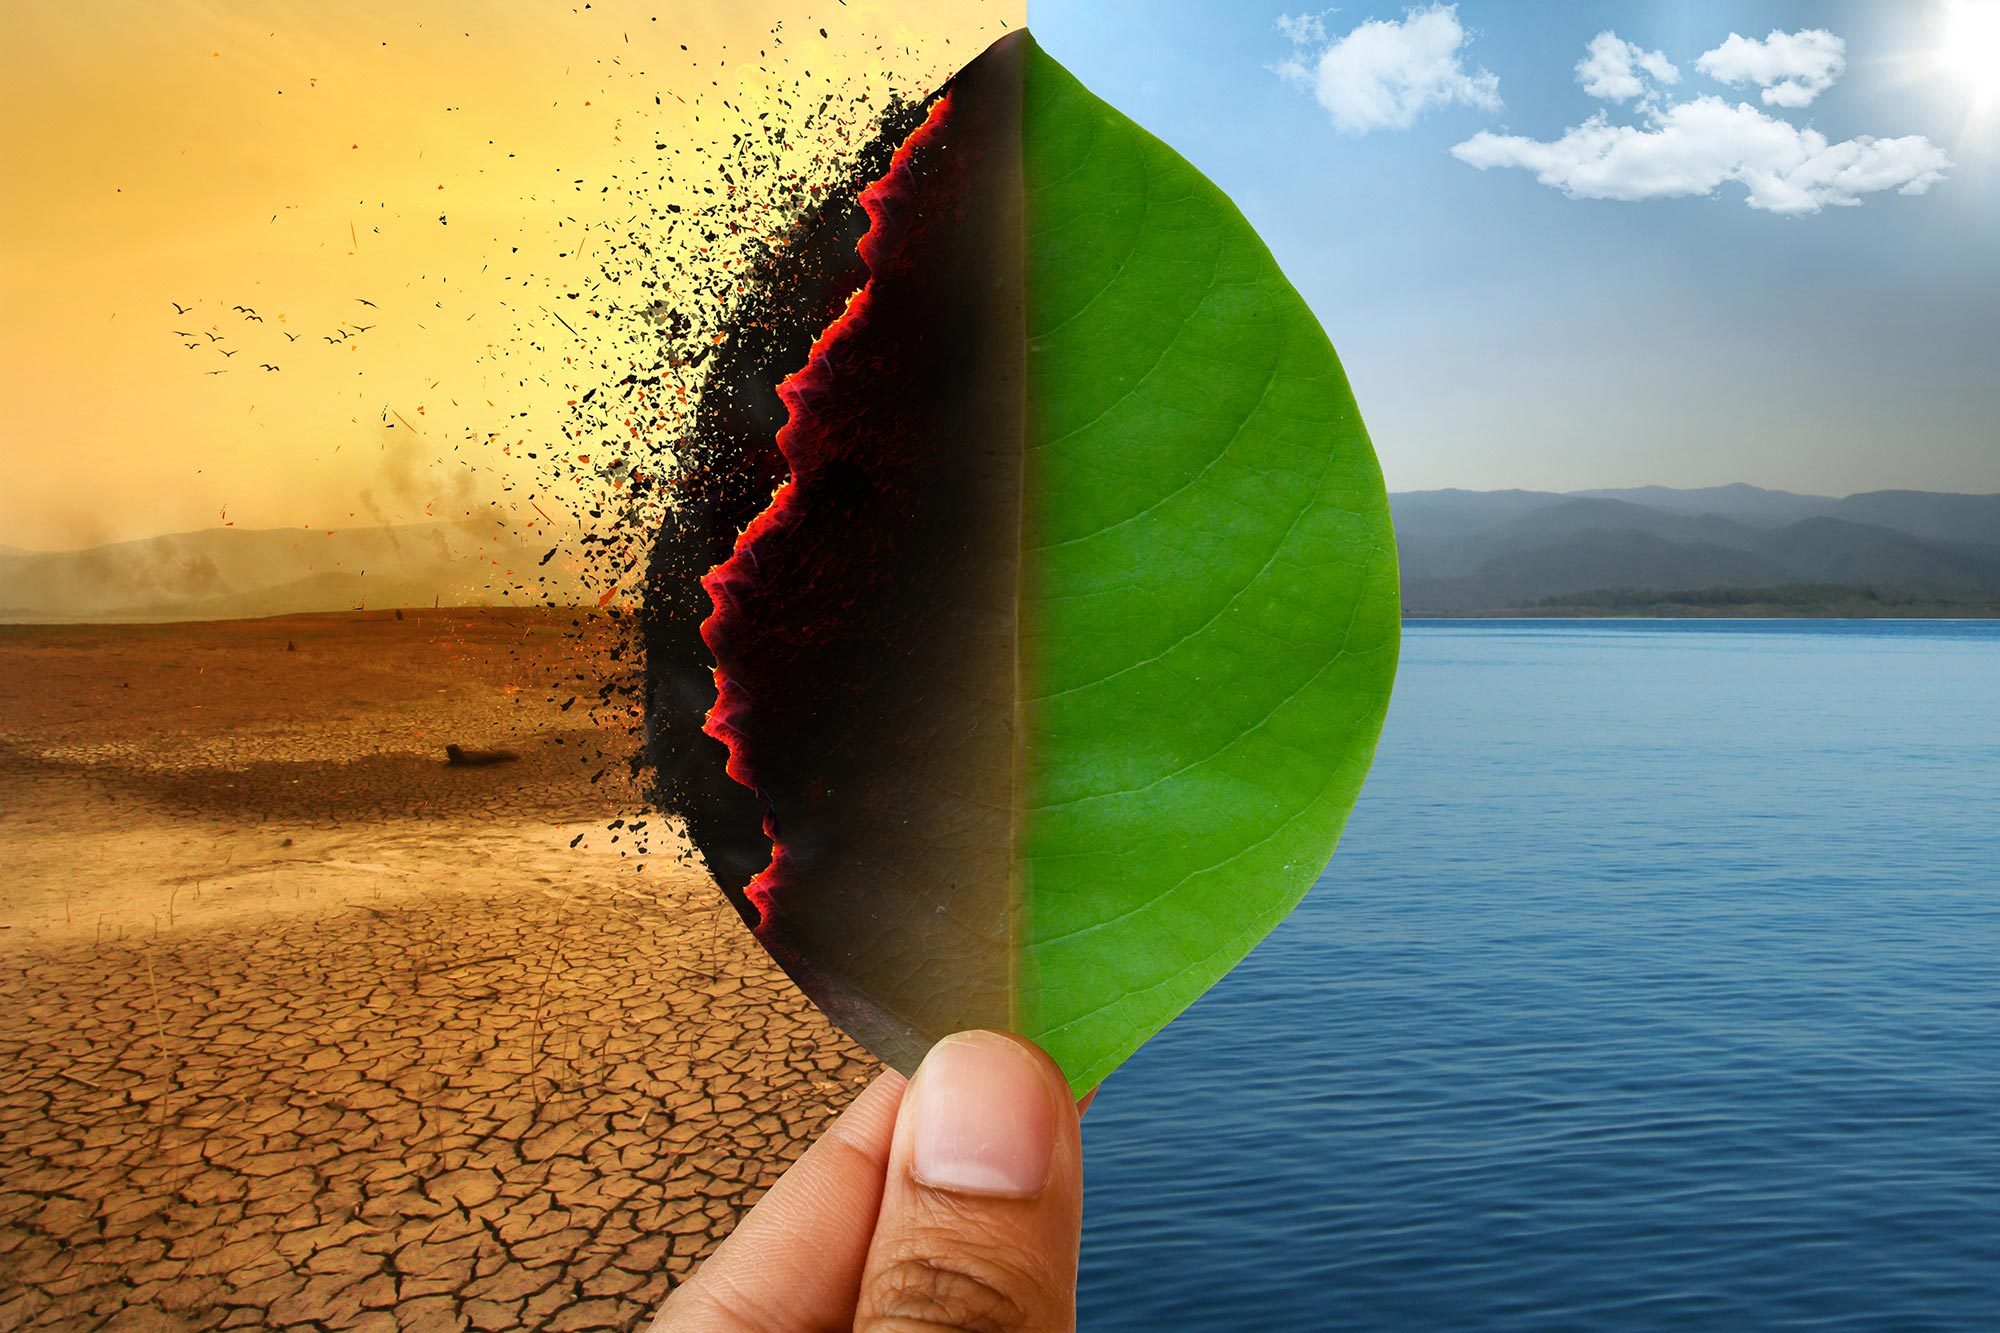 We do to cope with climate change